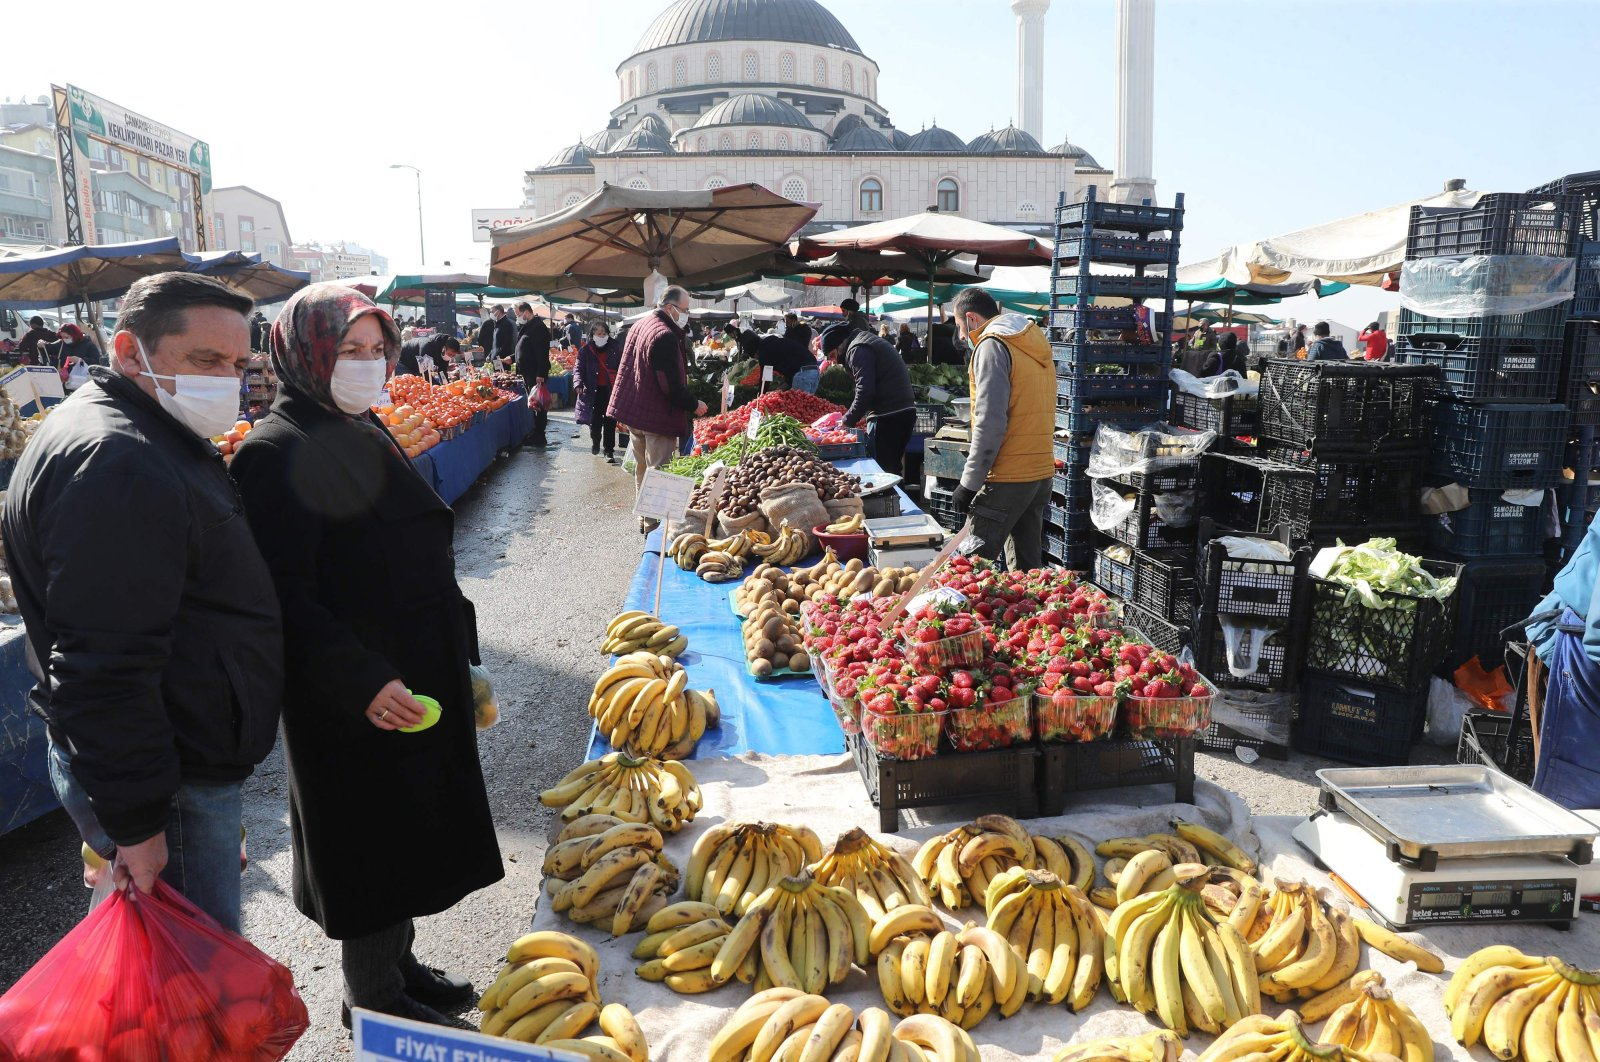 People wearing protective masks shop at a local market amid the COVID-19 outbreak in the capital Ankara, Turkey, Feb. 22, 2021. (AFP Photo)